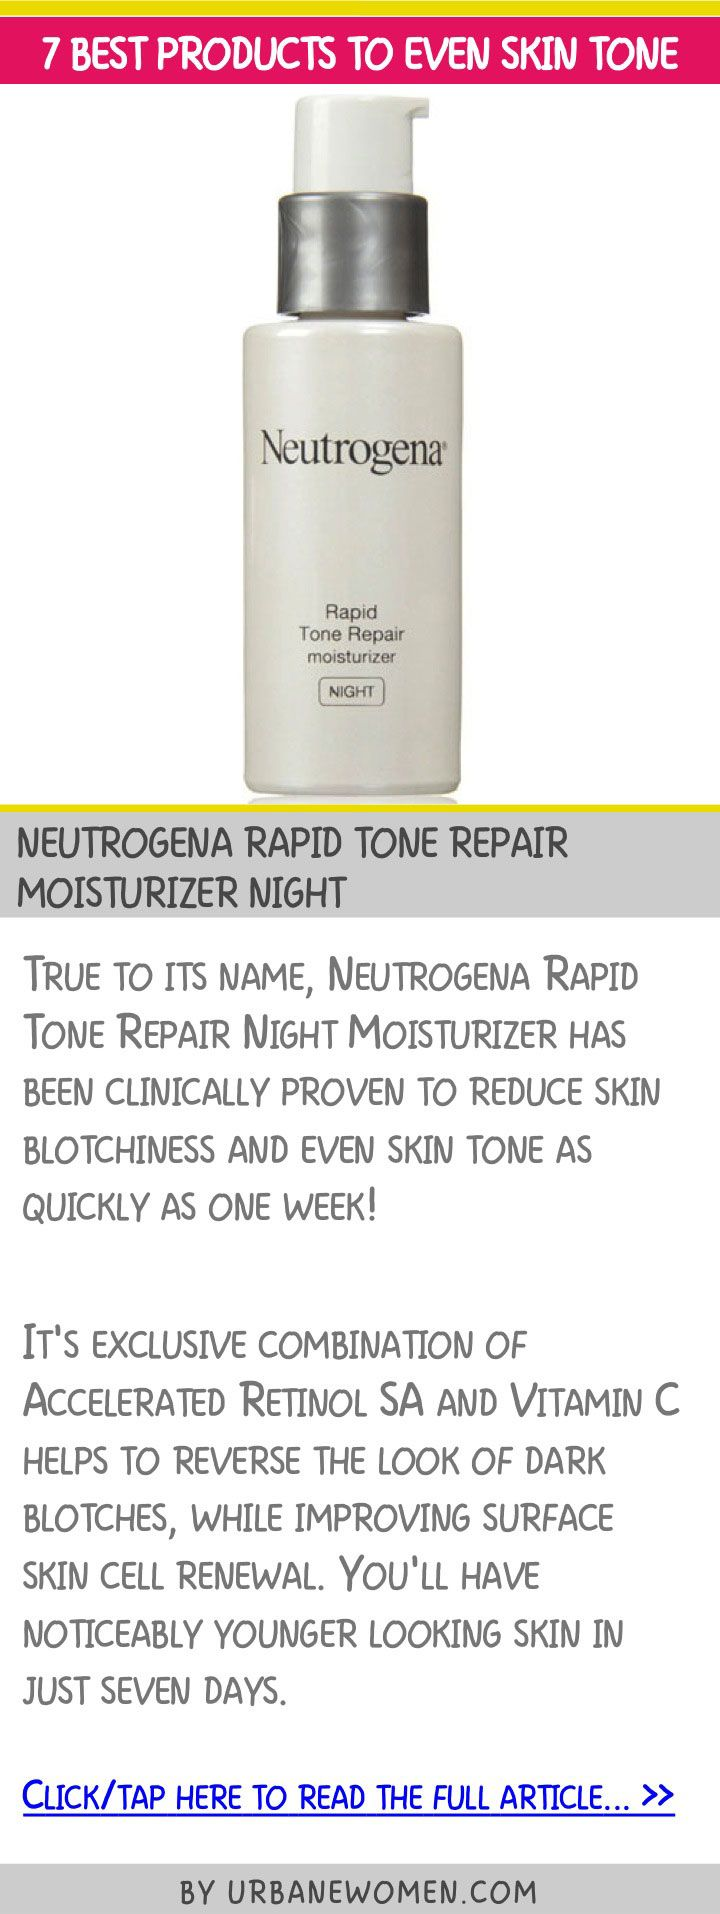 7 best products to even skin tone - Neutrogena Rapid Tone repair moisturizer night